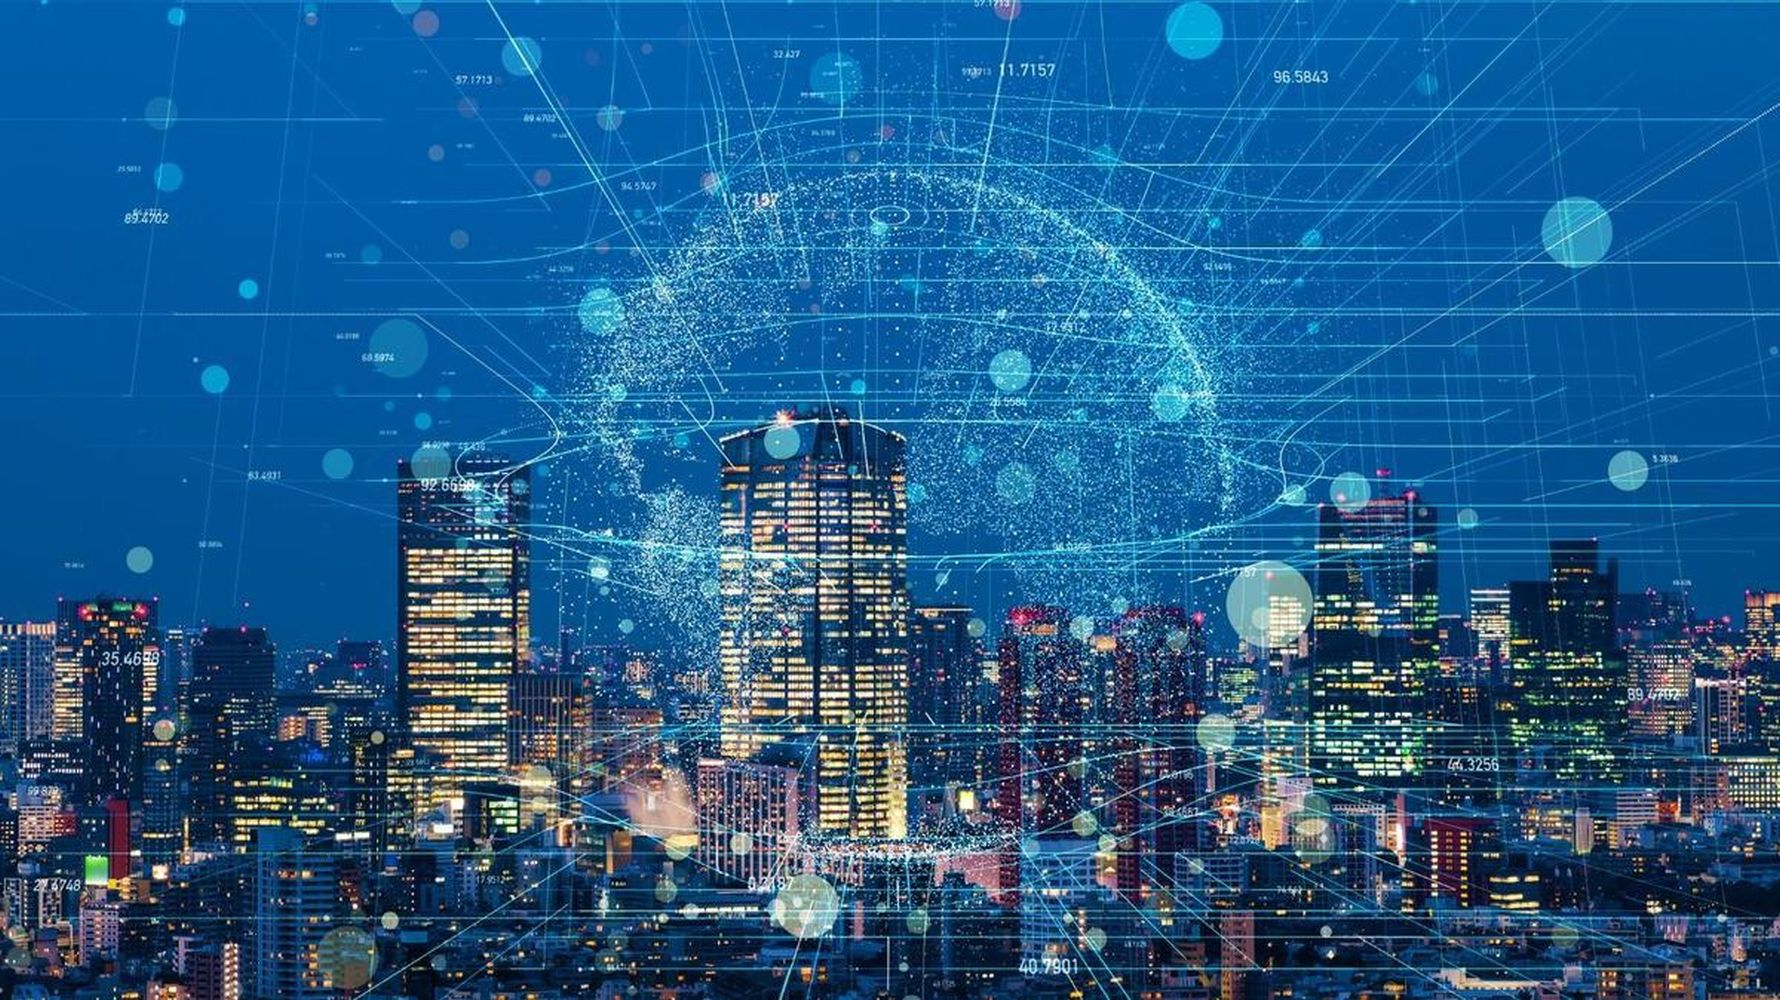 The next year will be critical for smart city technologies